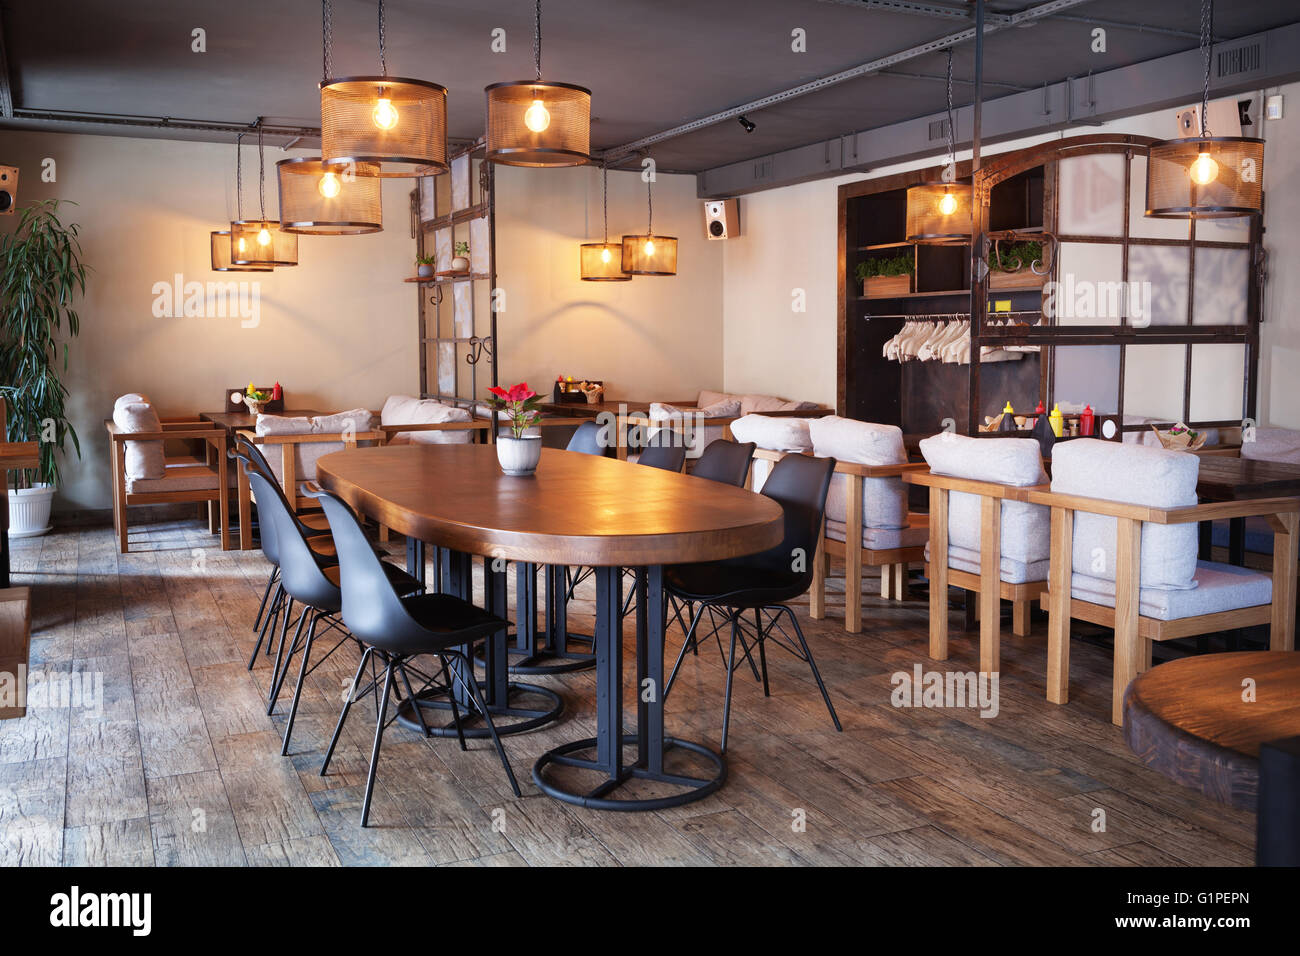 Modern european cafe interior in downtown Stock Photo, Royalty ...